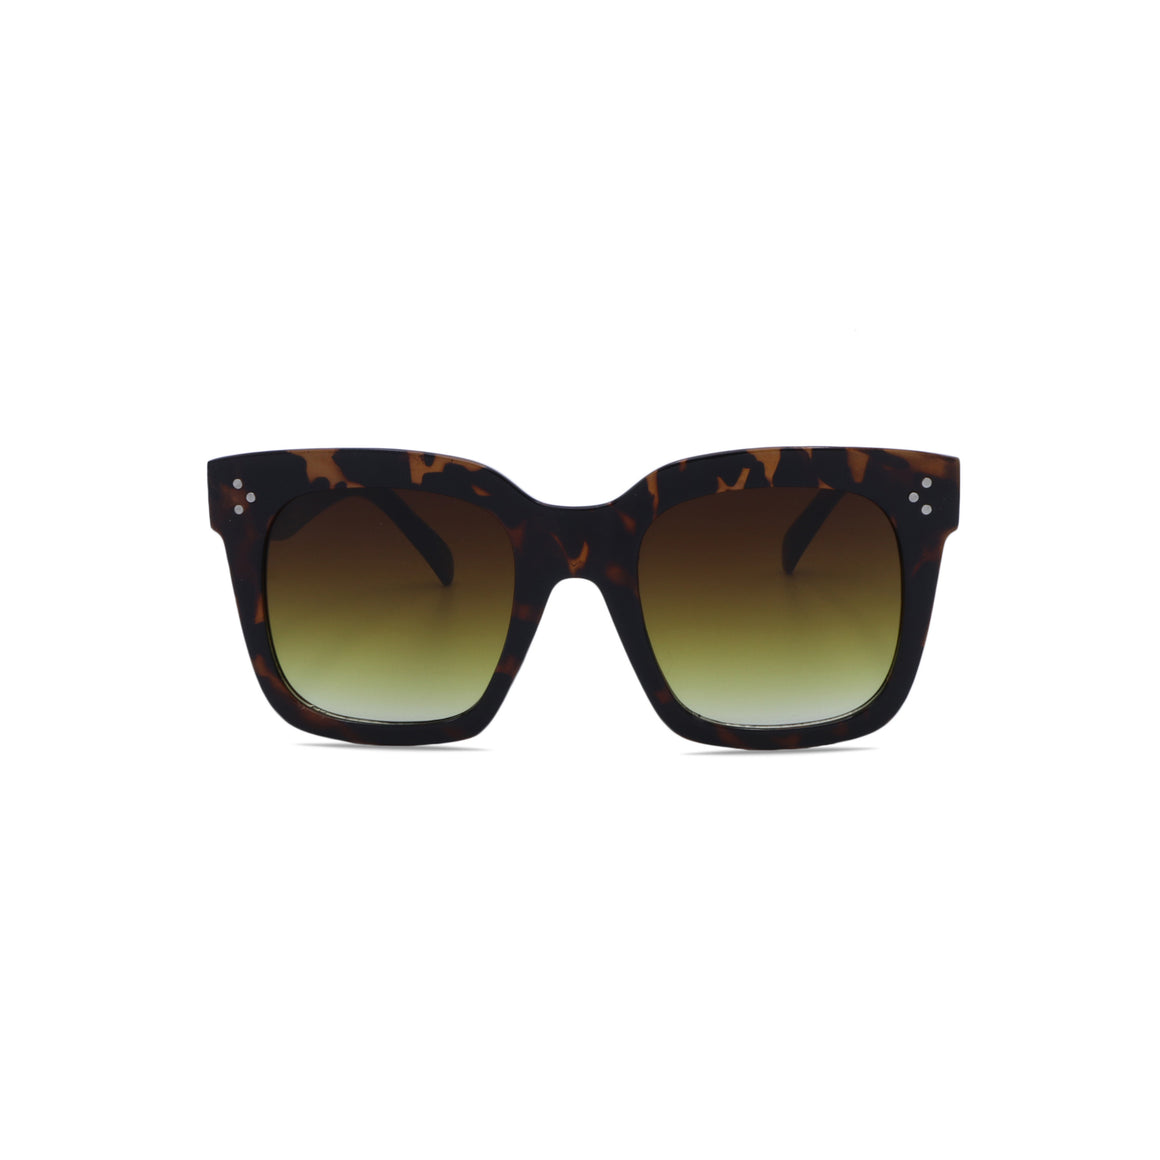 Vintage Sunglasses Retro in Leopard Brown Color